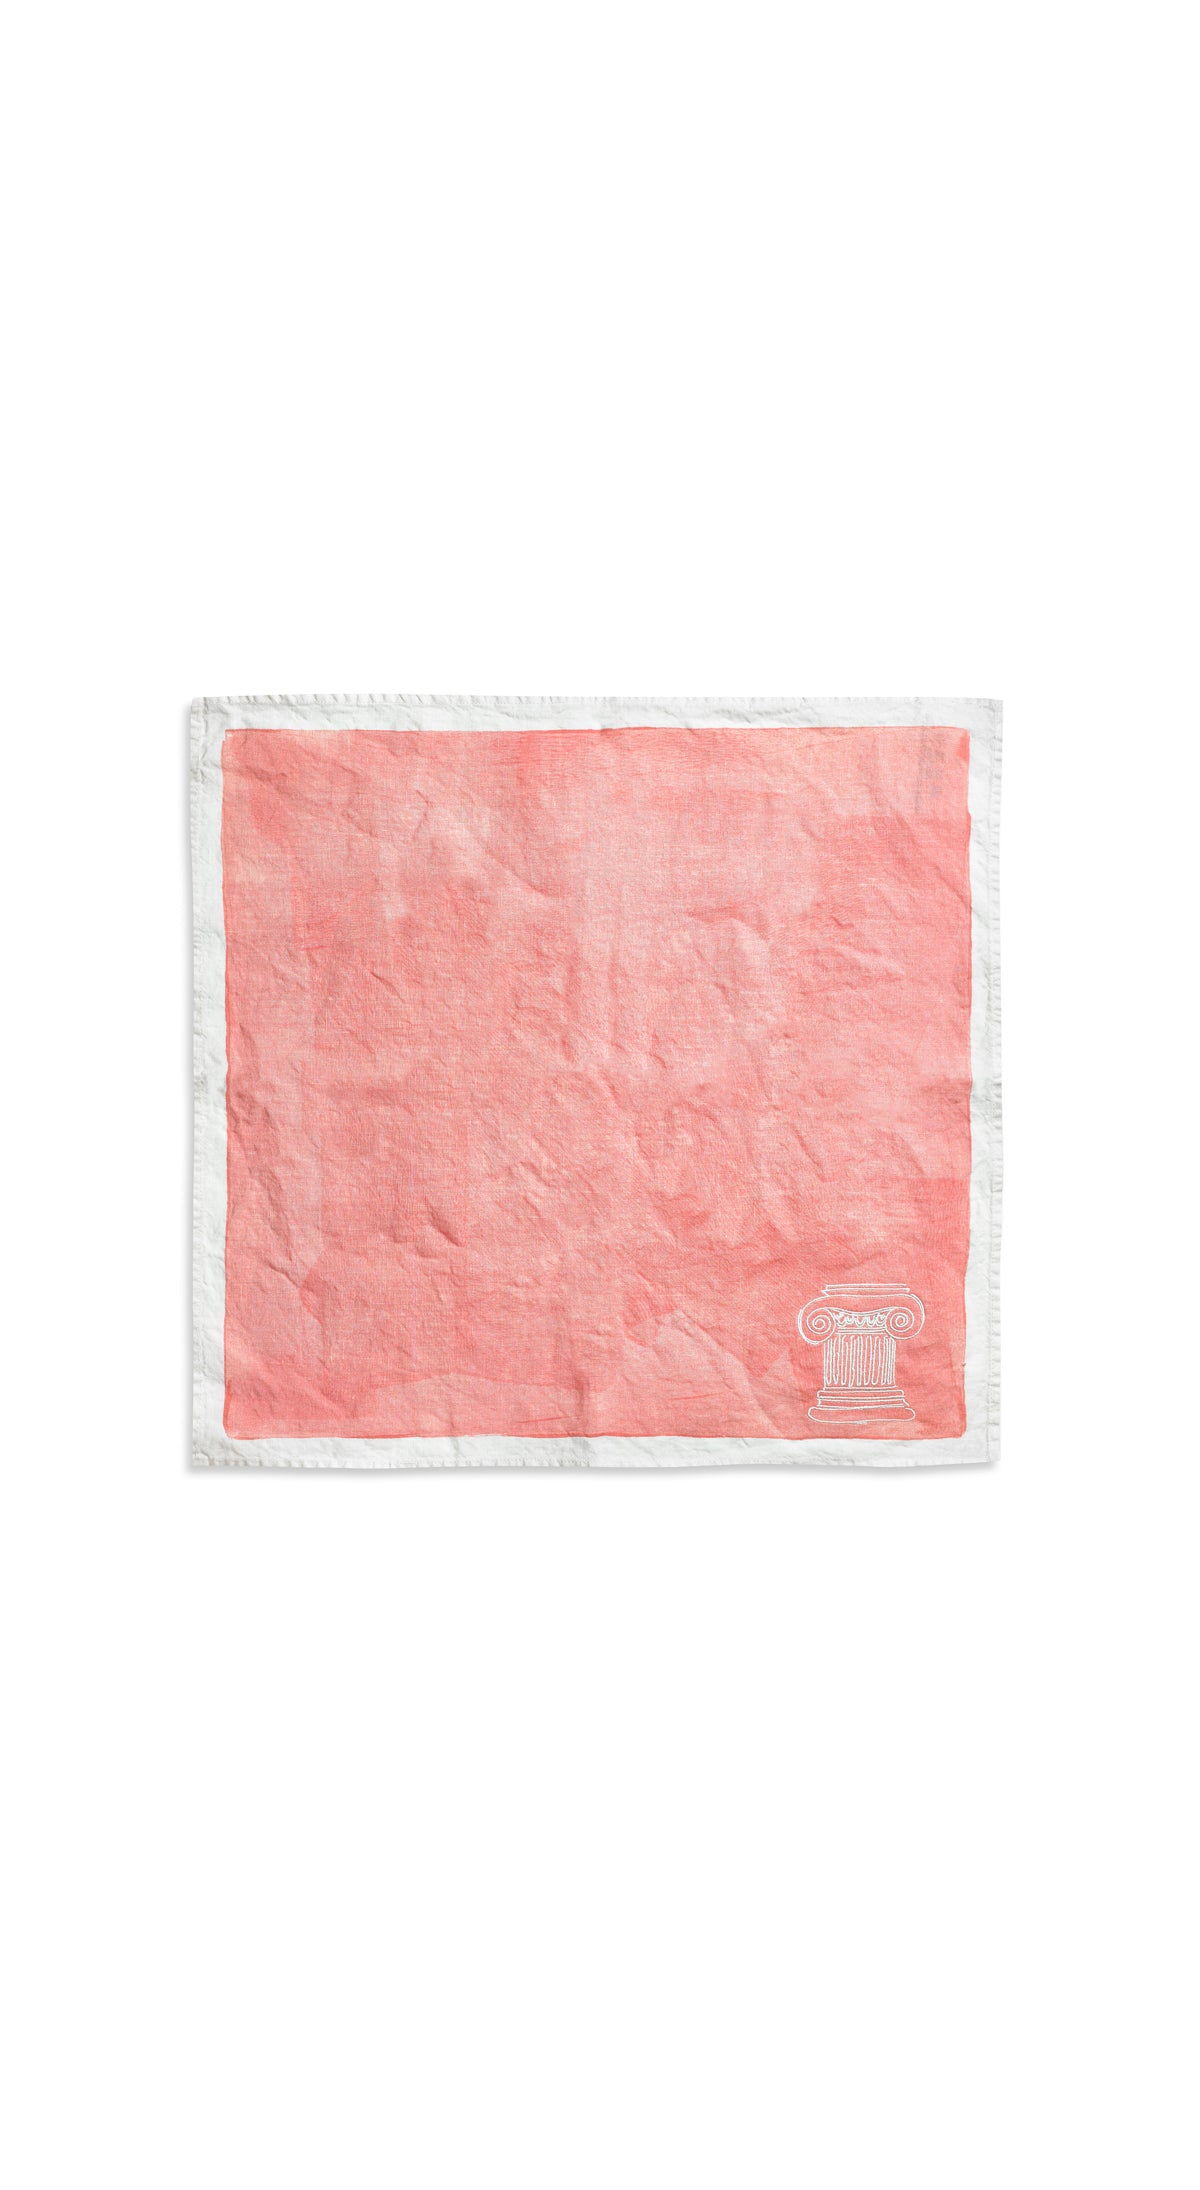 'Ionic Column' S&B x Luke Edward Hall Linen Napkin in Coral Pink